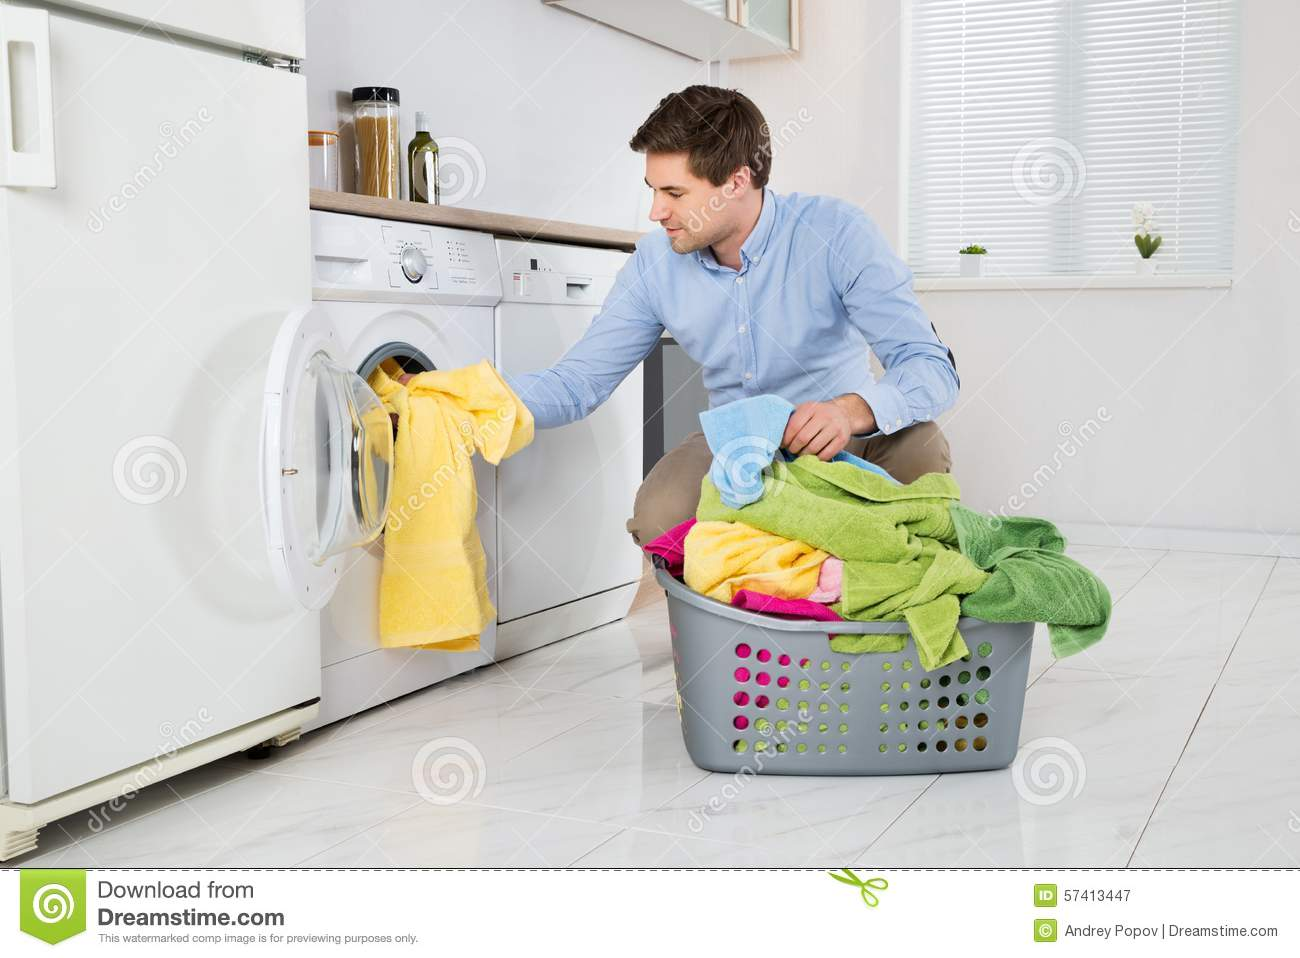 Man Loading Clothes Into Washing Machine Stock Photo